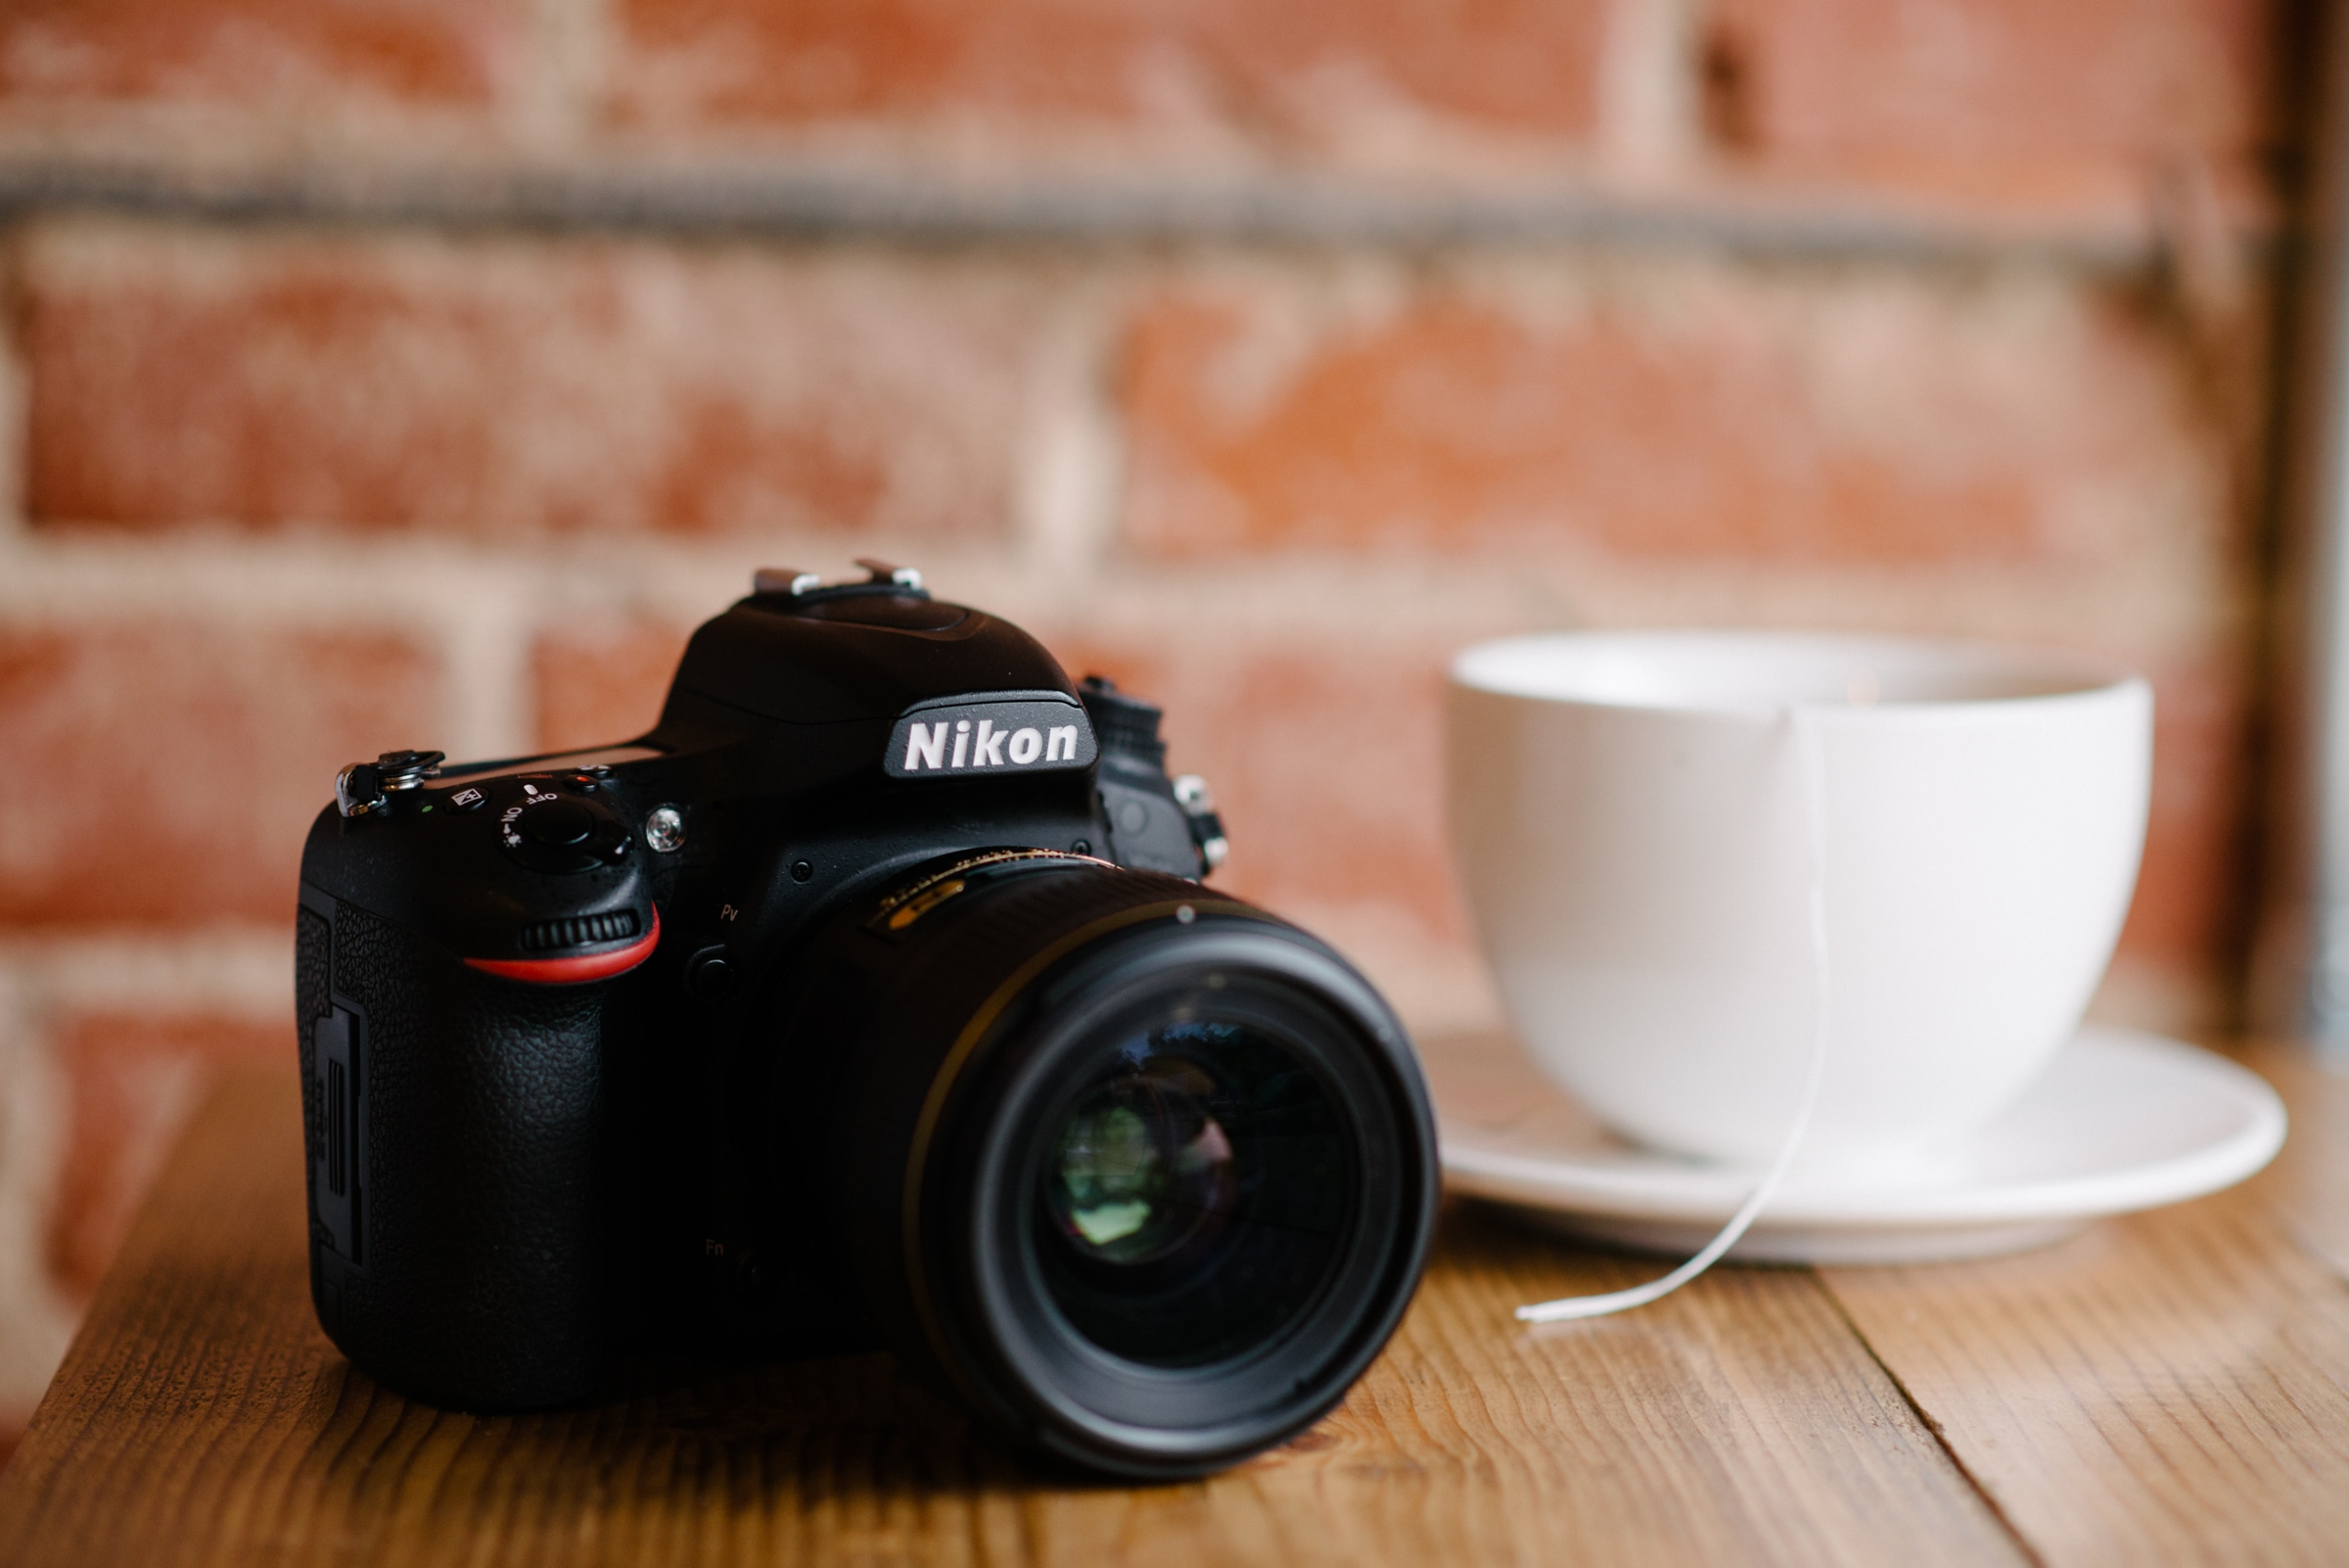 essential items that are must-have photography equipment for beginners